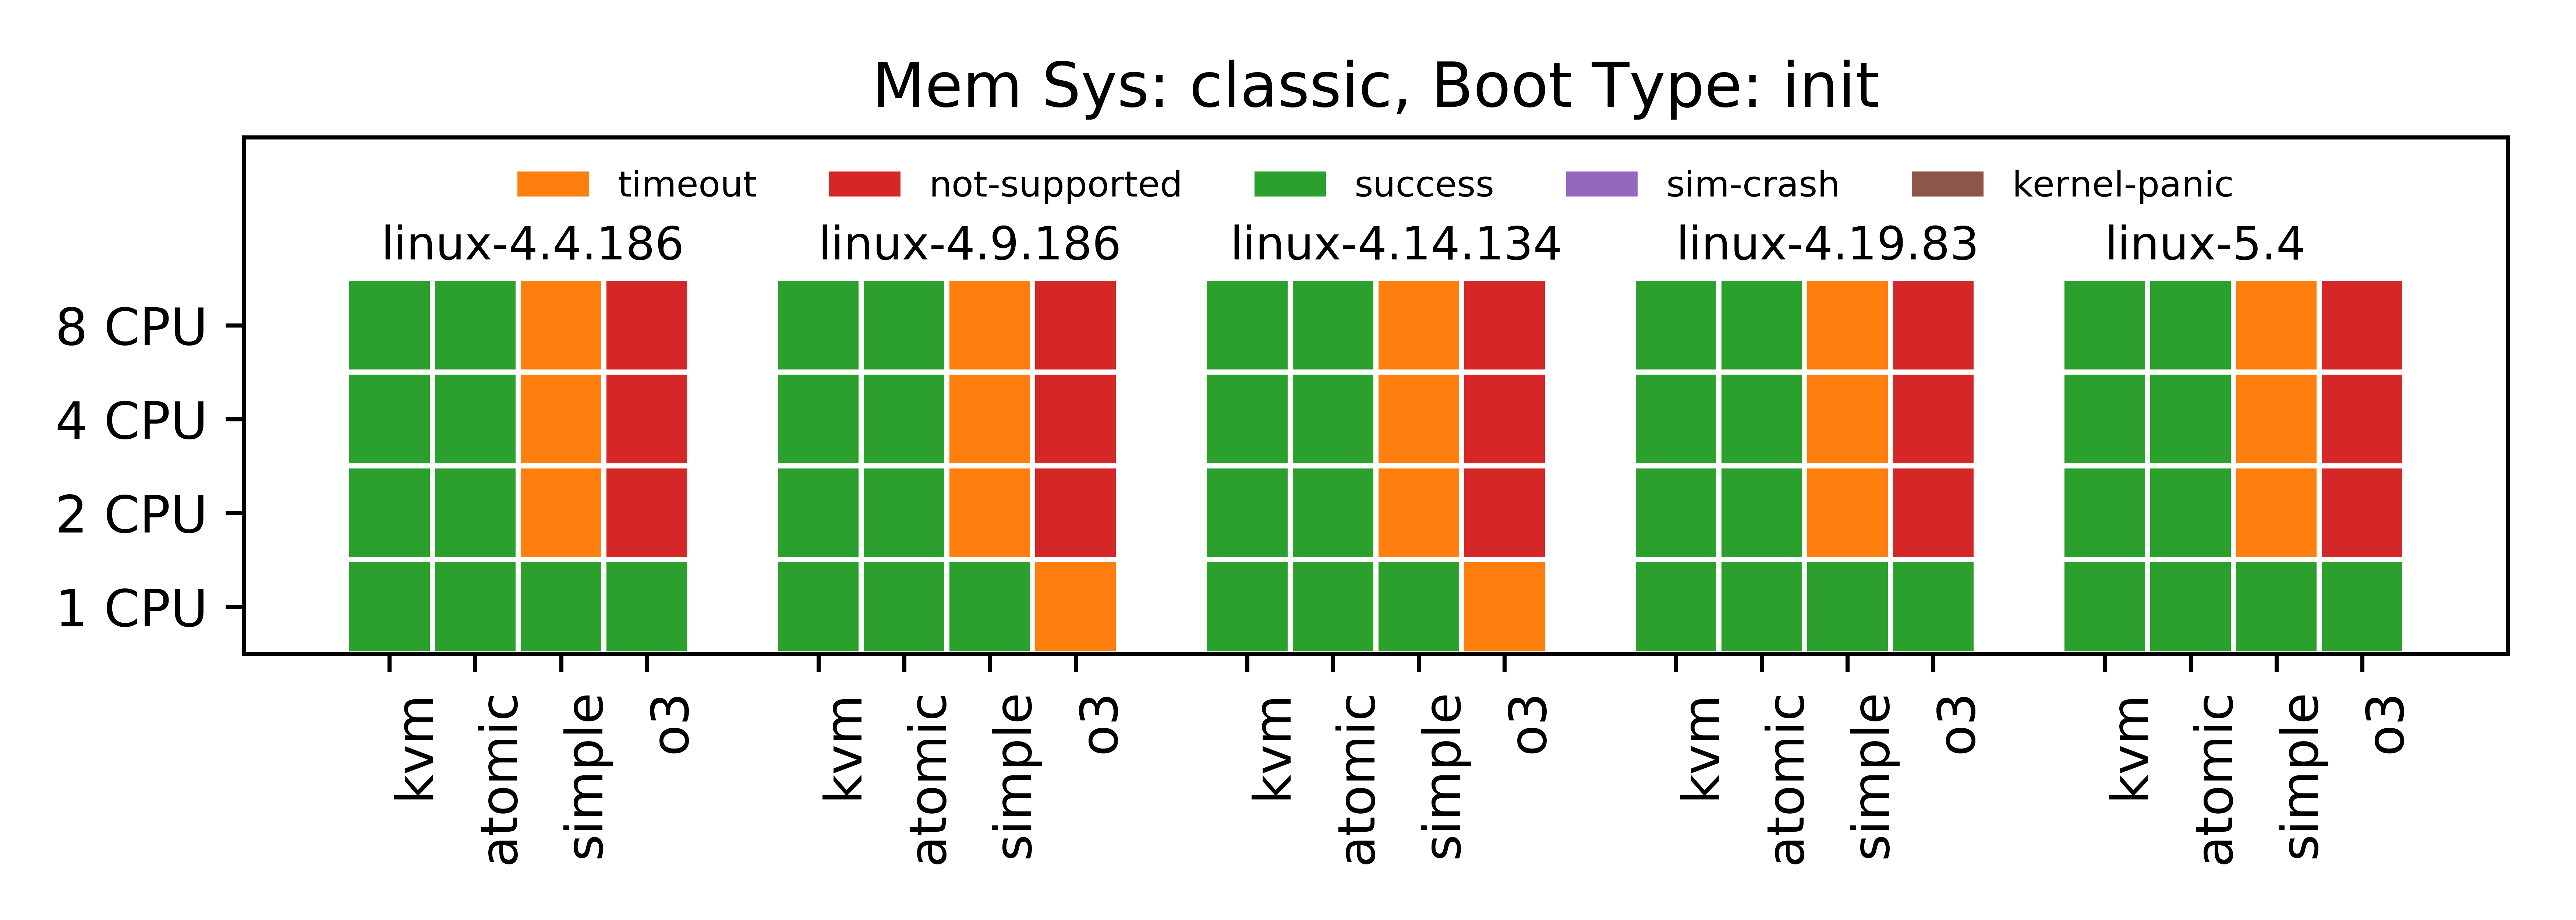 Boot Tests Status with Classic Memory and init Boot